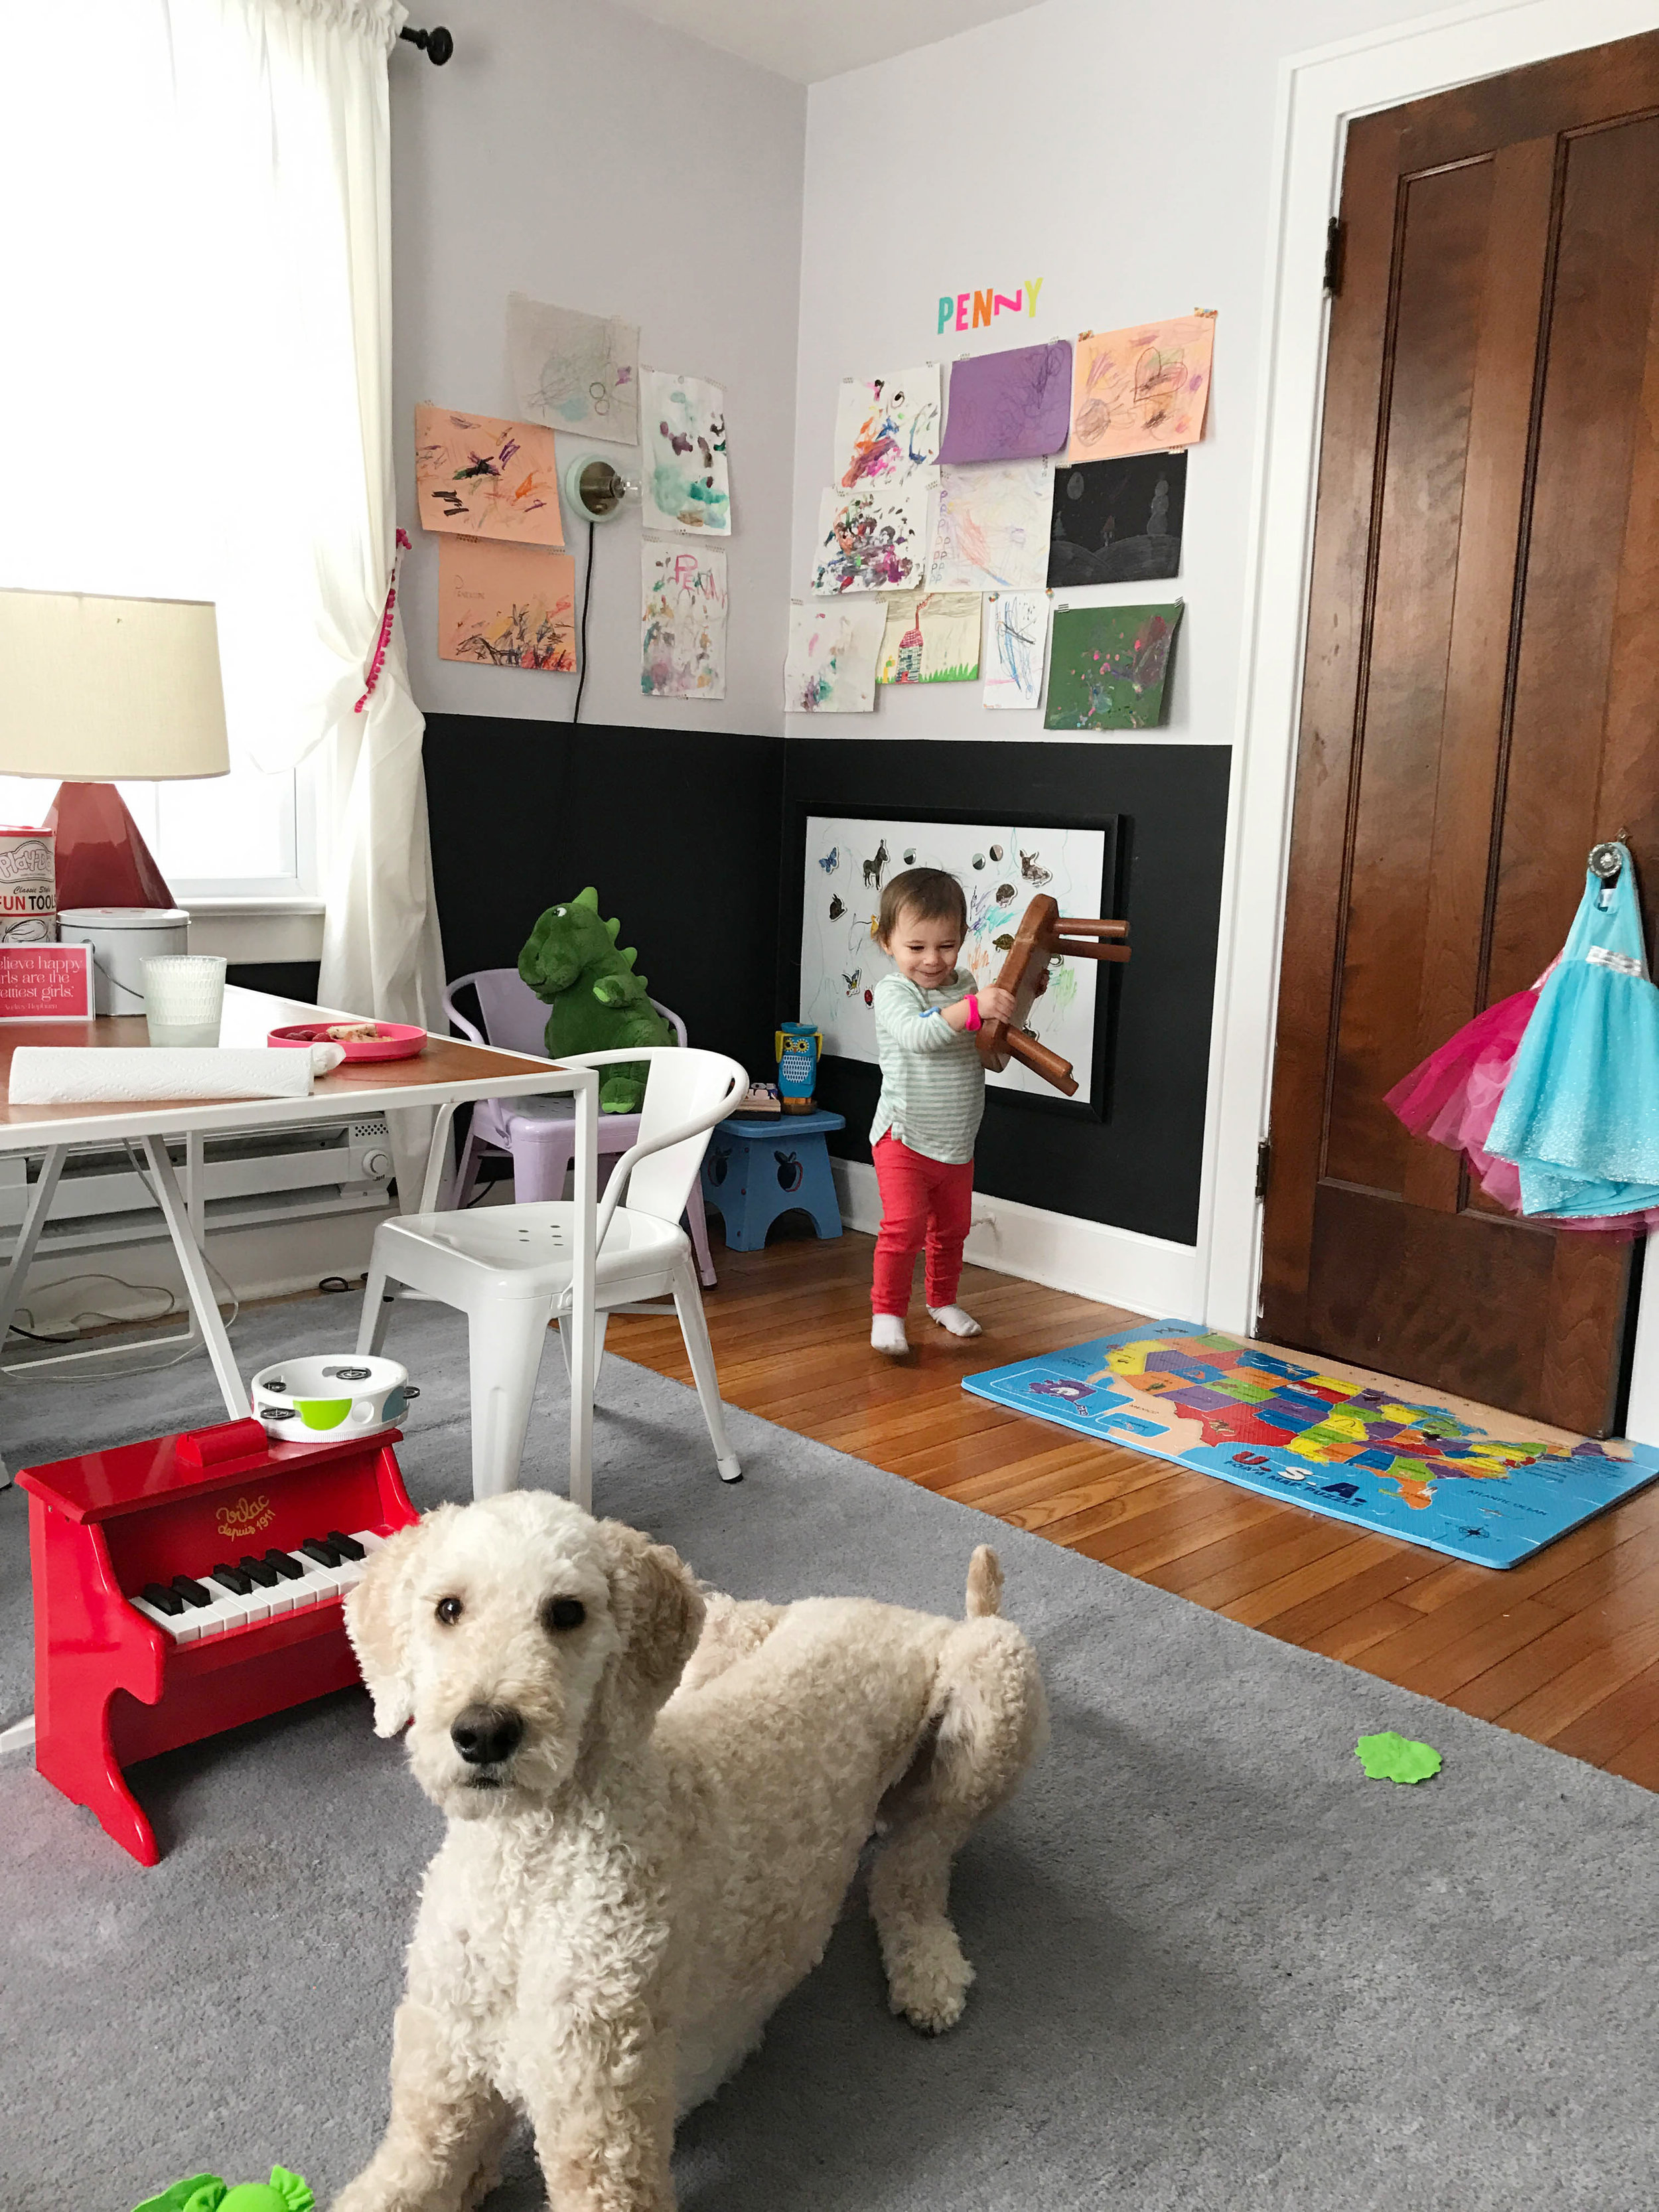 deboe-studio-interiors-playroom-in-action